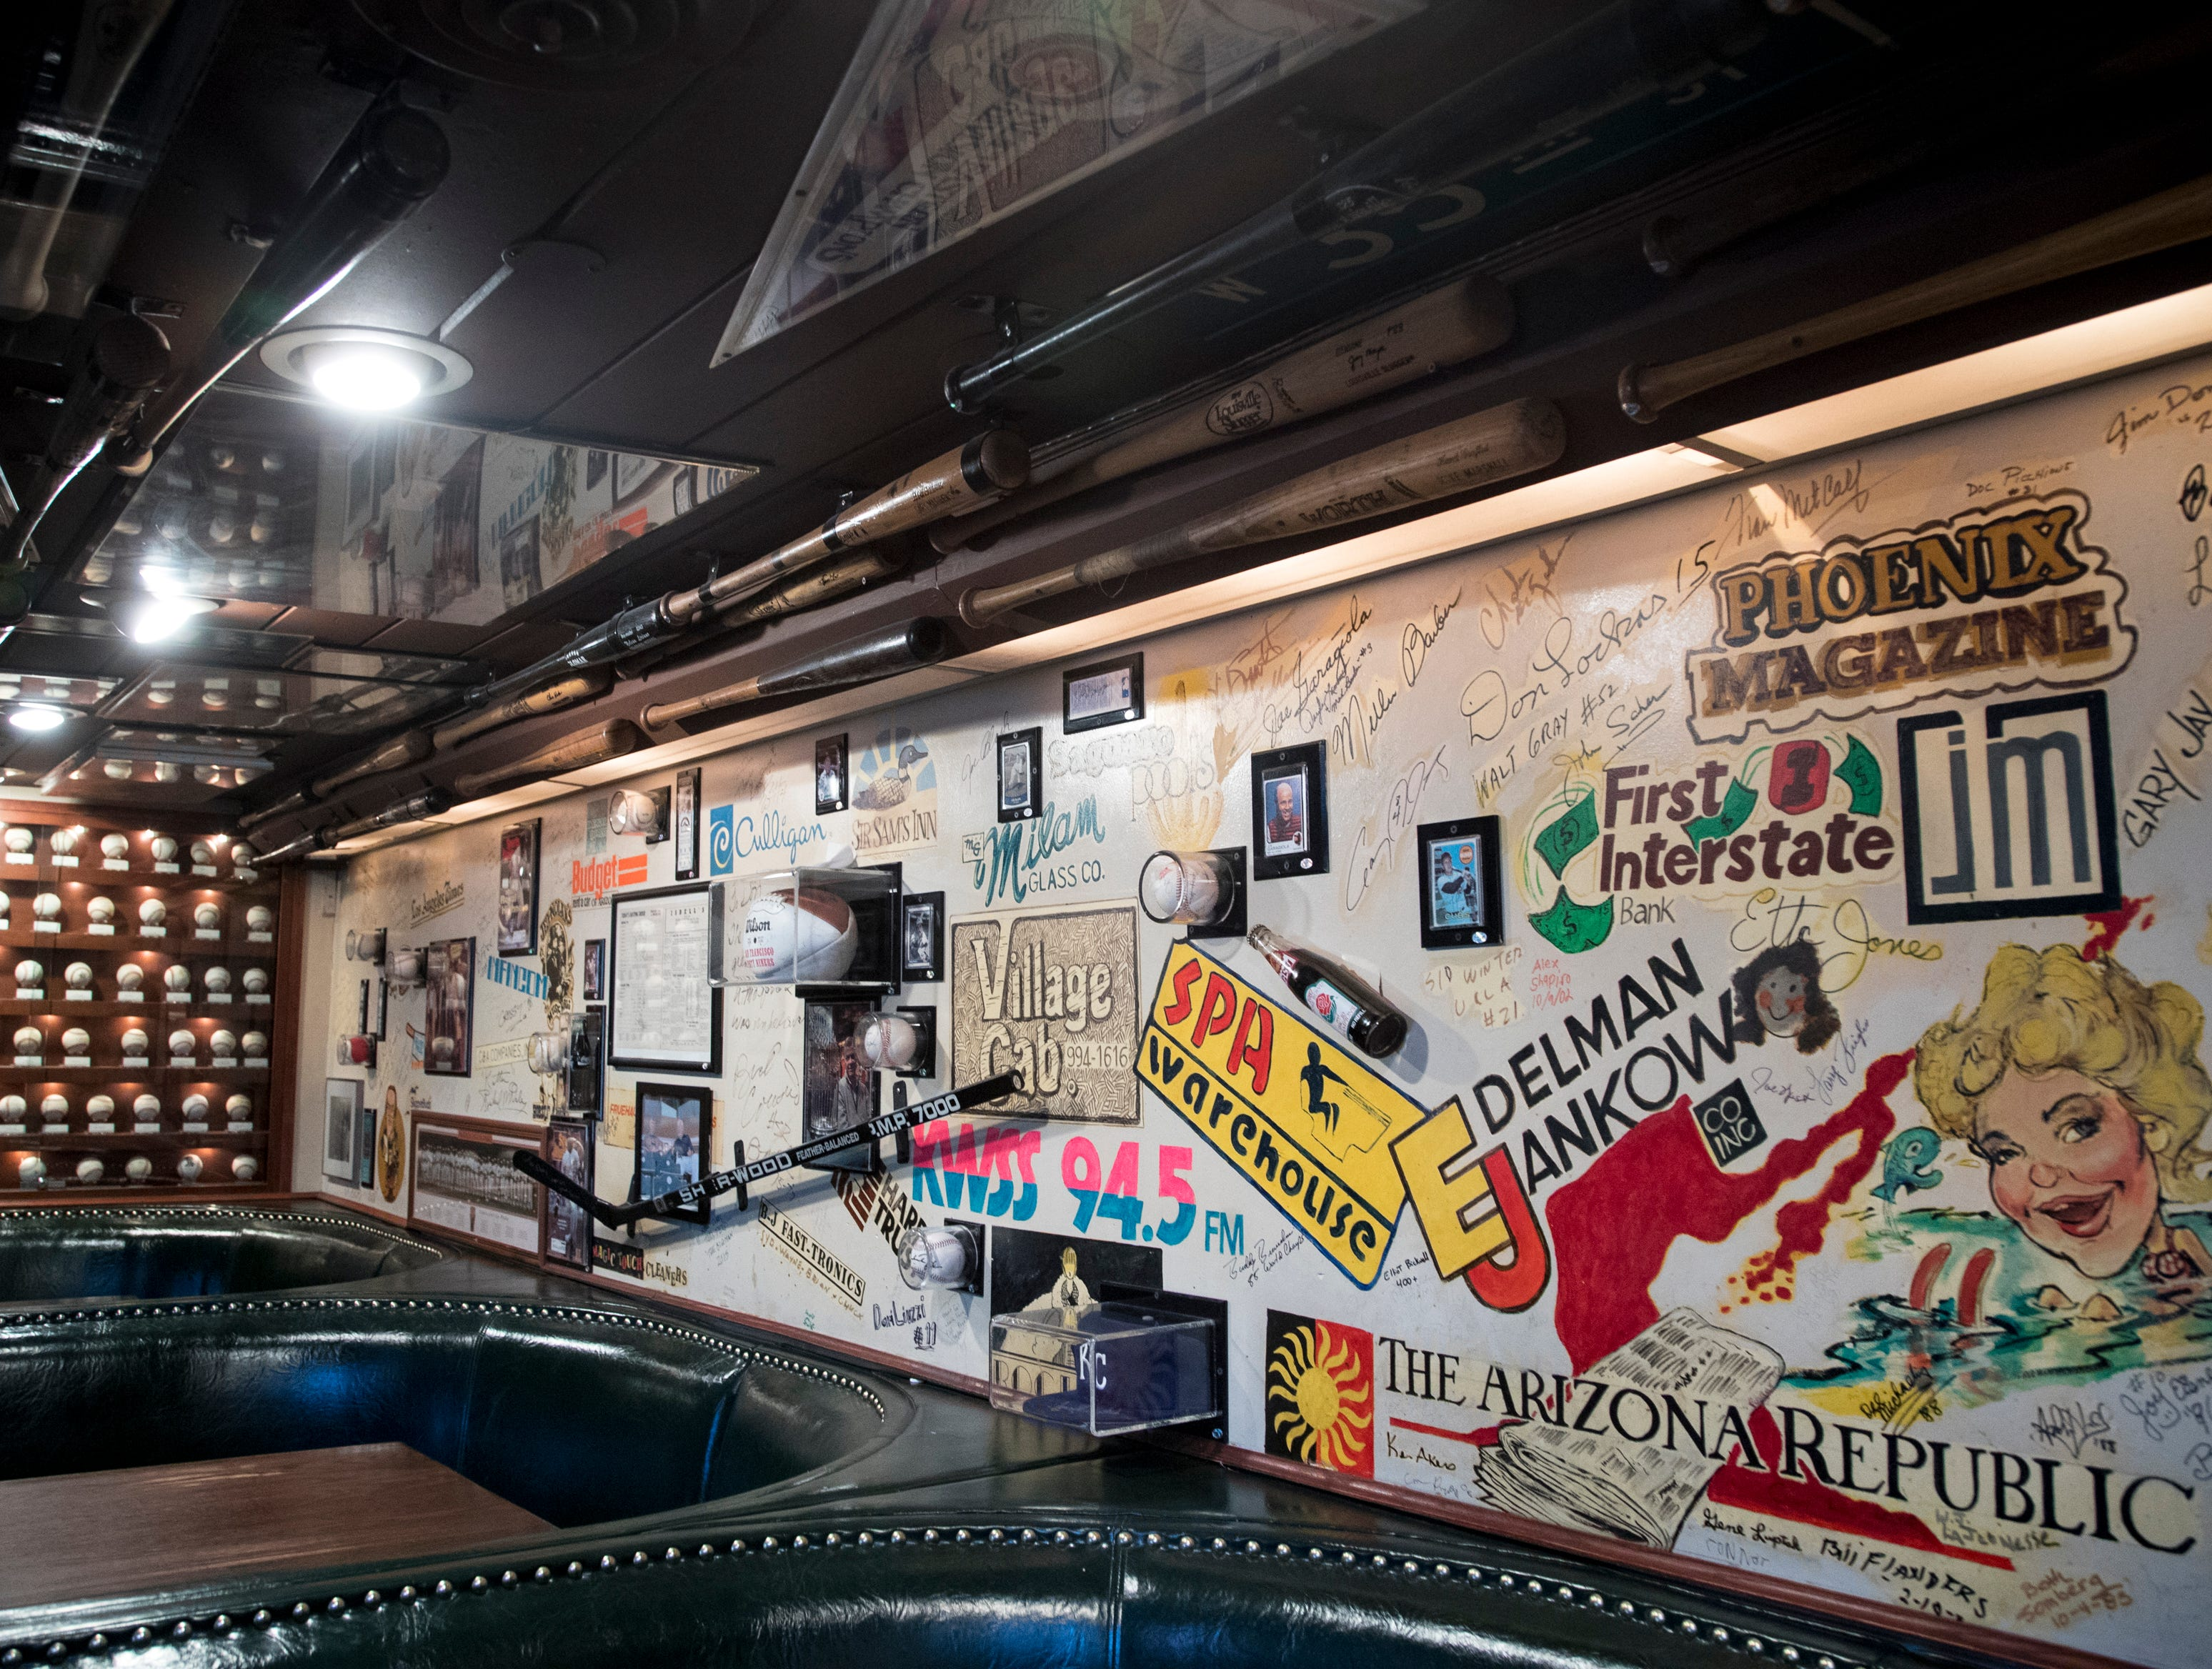 Memorabilia hangs on the walls and ceiling Feb. 27, 2019, at Don & Charlie's, 7501 E. Camelback Road, Scottsdale.